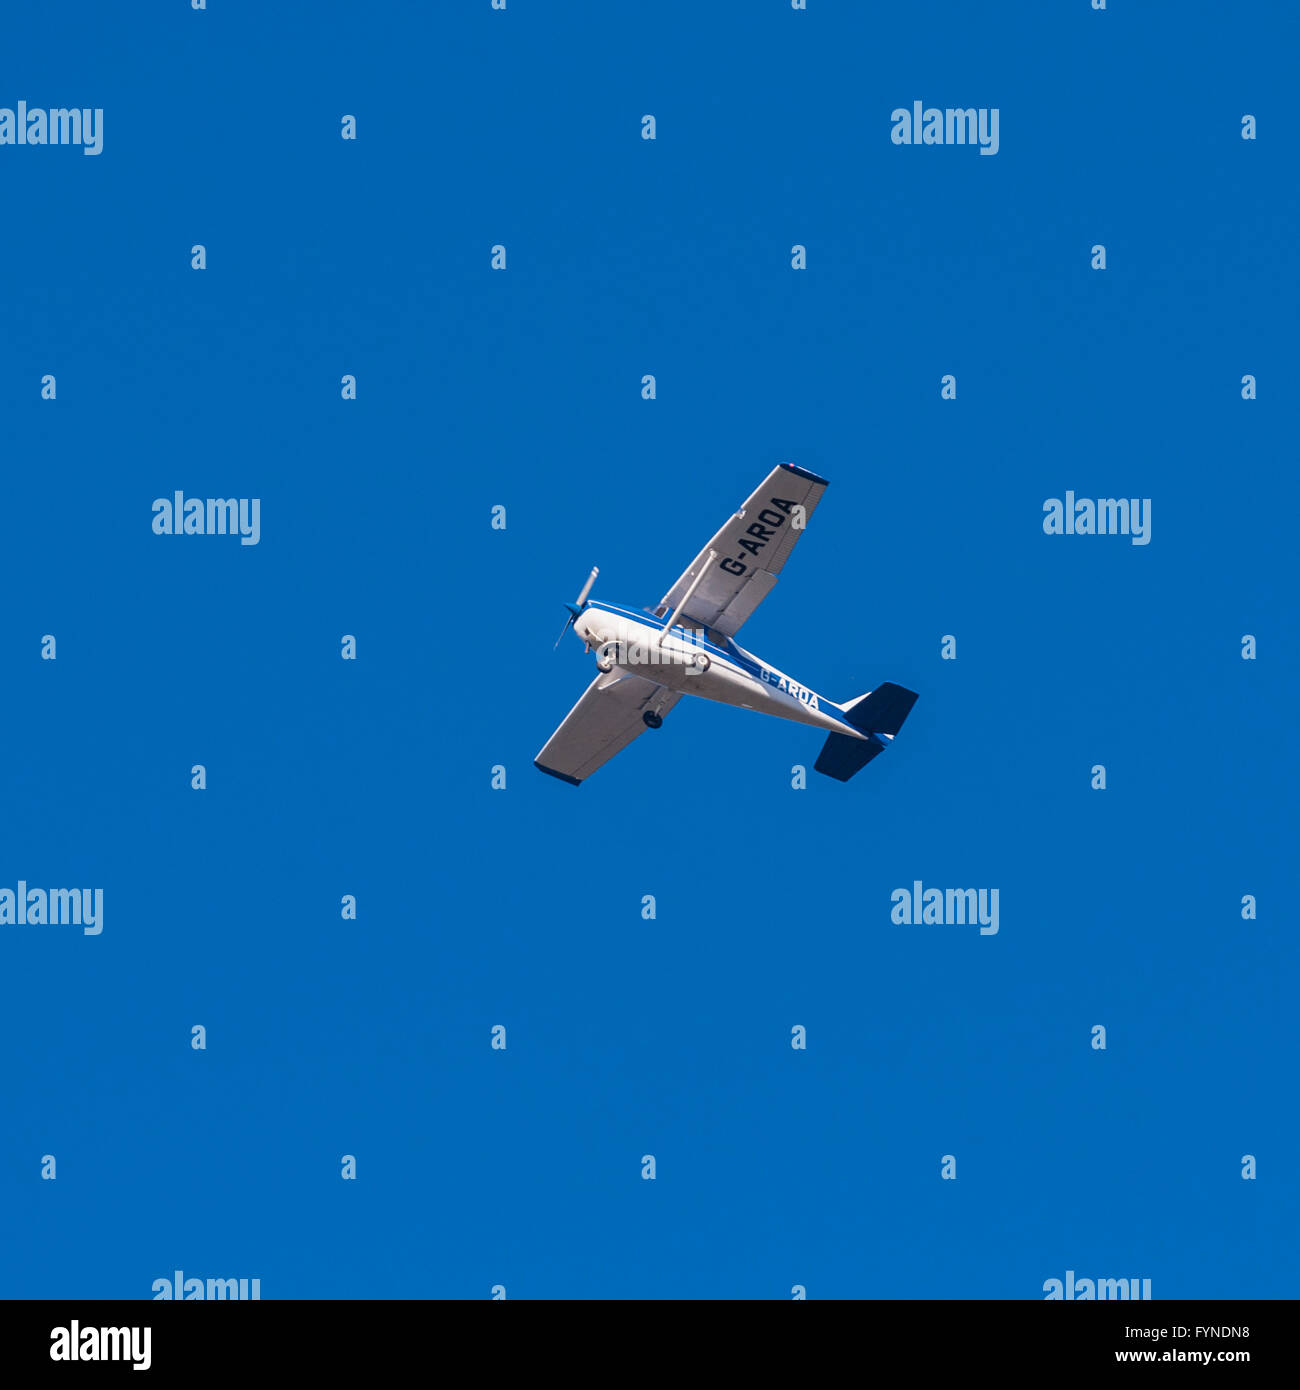 A small light aircraft in the Uk - Stock Image